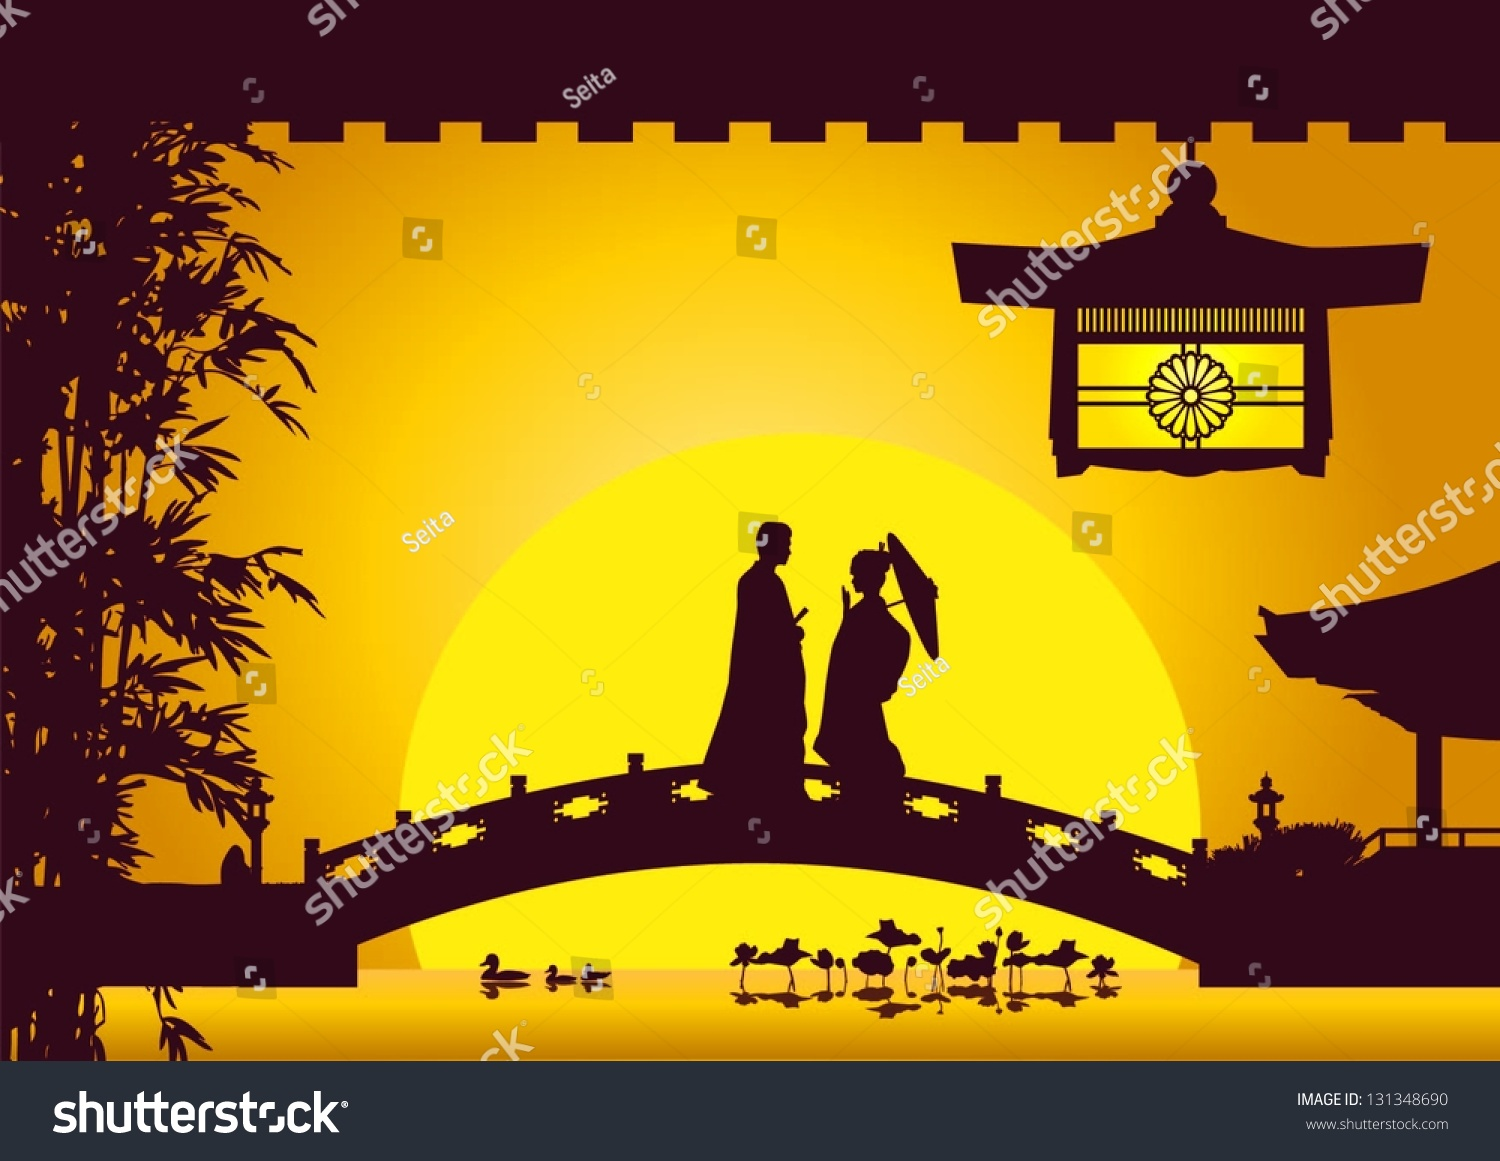 Splendid Illustration Japanese Bride Groom Dating On Stock Vector   With Exquisite Illustration Of Japanese Bride And Groom Dating On The Bridge In Japan  Garden Vector With Beautiful Gardens With Railway Sleepers Also Swiss Garden Residences Kuala Lumpur In Addition Garden Gift Sets And Garden Bucket As Well As  Piece Garden Furniture Set Additionally Olive Garden Free From Shutterstockcom With   Exquisite Illustration Japanese Bride Groom Dating On Stock Vector   With Beautiful Illustration Of Japanese Bride And Groom Dating On The Bridge In Japan  Garden Vector And Splendid Gardens With Railway Sleepers Also Swiss Garden Residences Kuala Lumpur In Addition Garden Gift Sets From Shutterstockcom